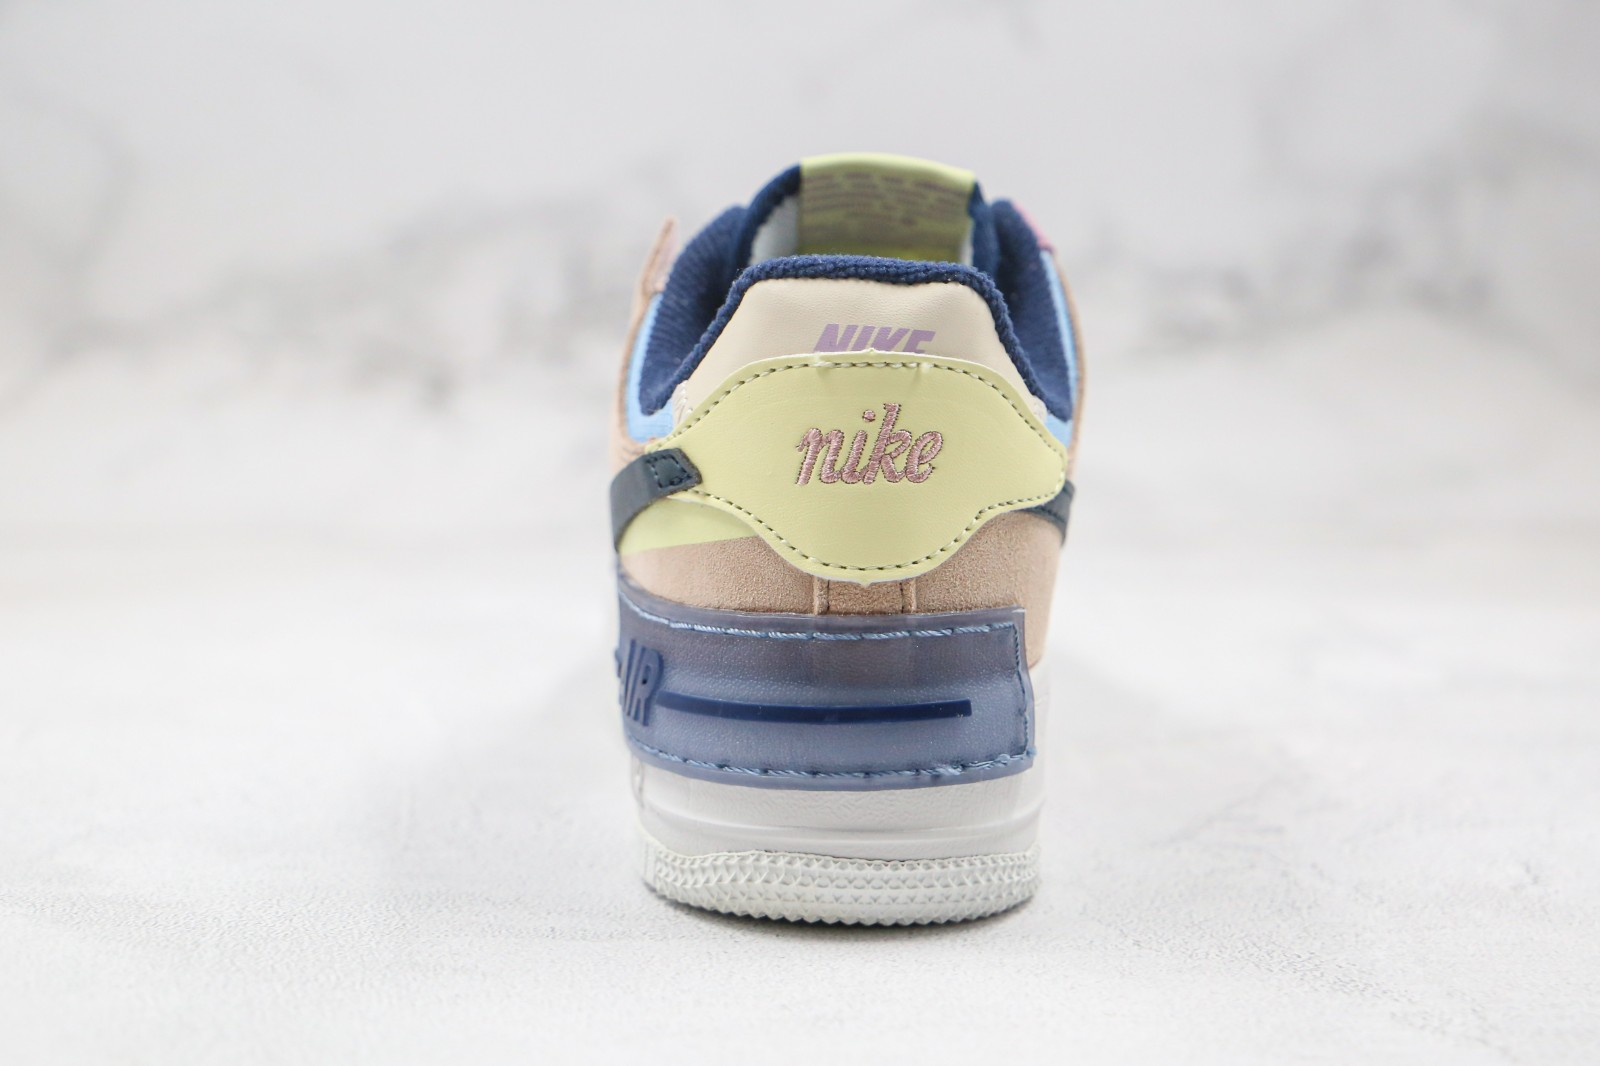 Wmns Nike Air Force 1 Shadow White Hydrogen Blue Purple Ci0919 121 Reactrun Nike air force one 1 low 07 white glitter silver. wmns nike air force 1 shadow white